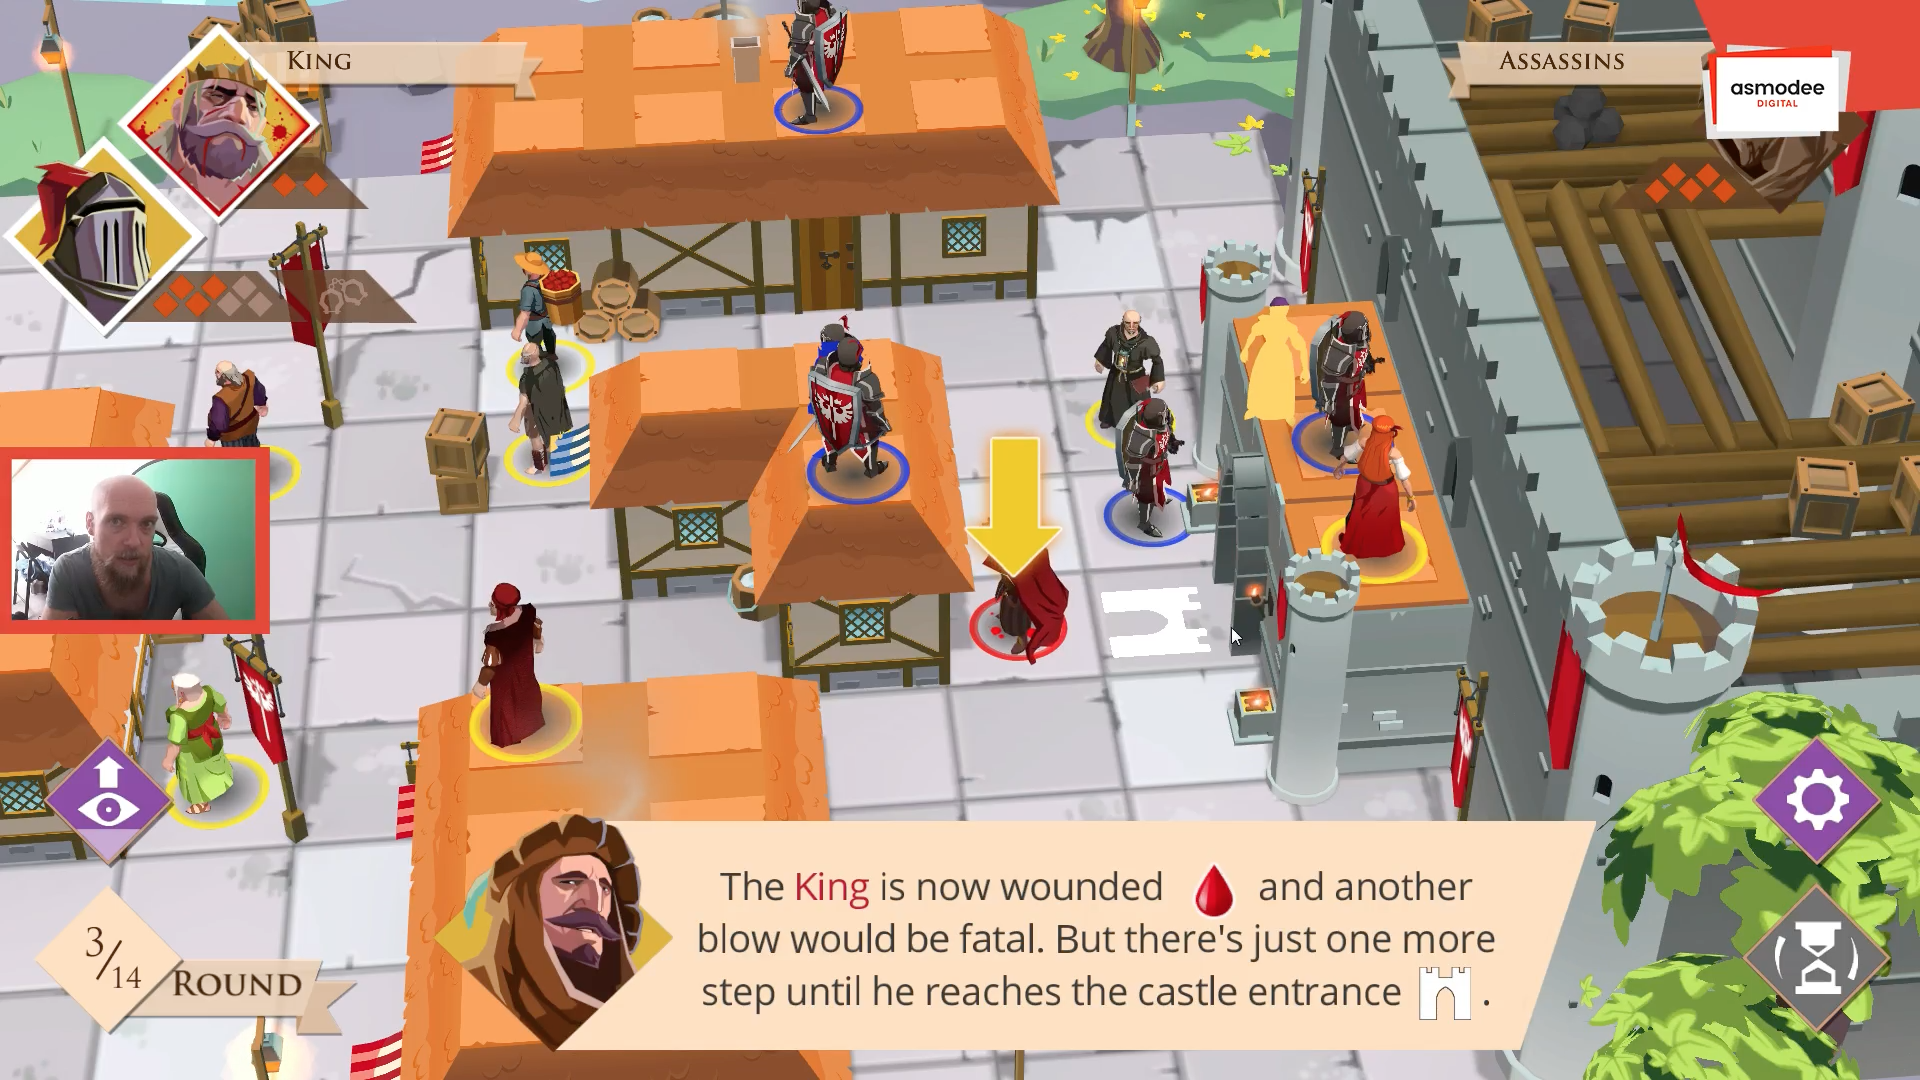 7 wonders of the ancient world game for iphone